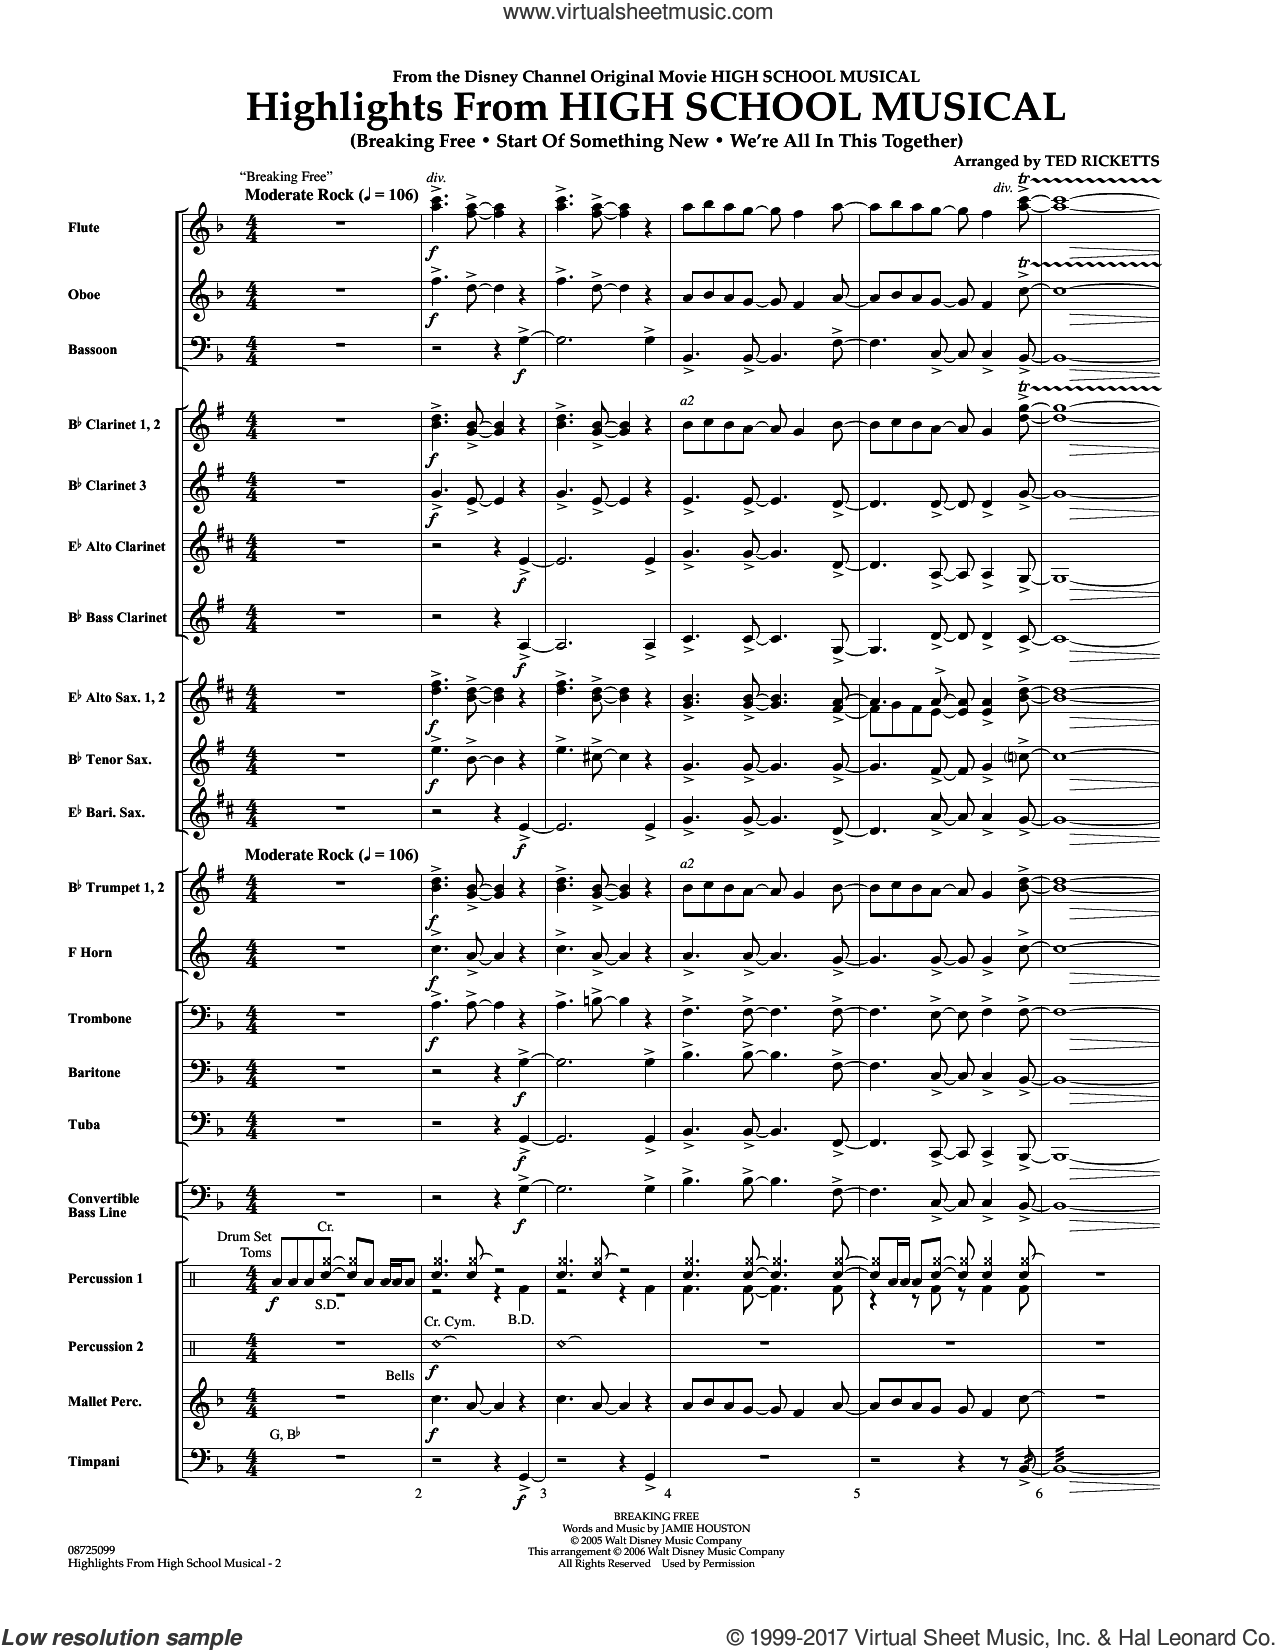 Highlights From 'High School Musical' (COMPLETE) sheet music for concert band by Ted Ricketts, intermediate skill level